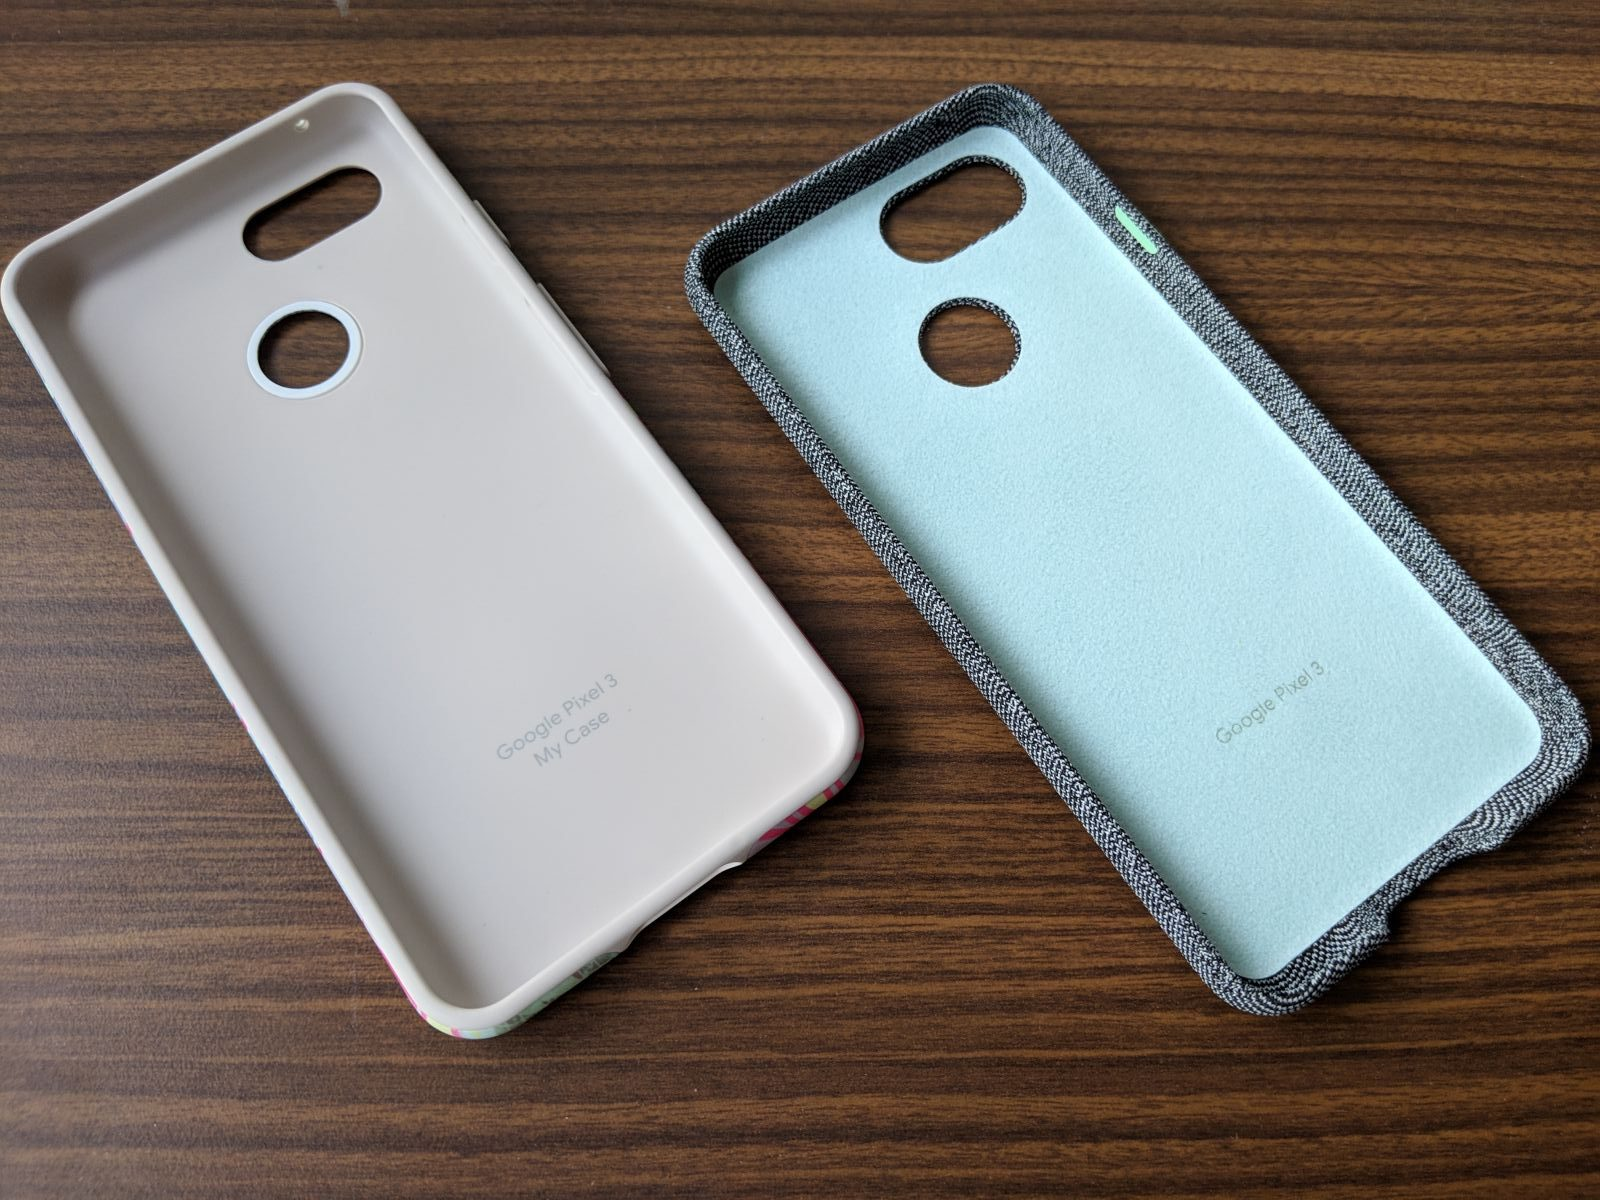 new concept 3830c 7af87 Geek Review: Google Pixel 3 My Case | Geek Culture